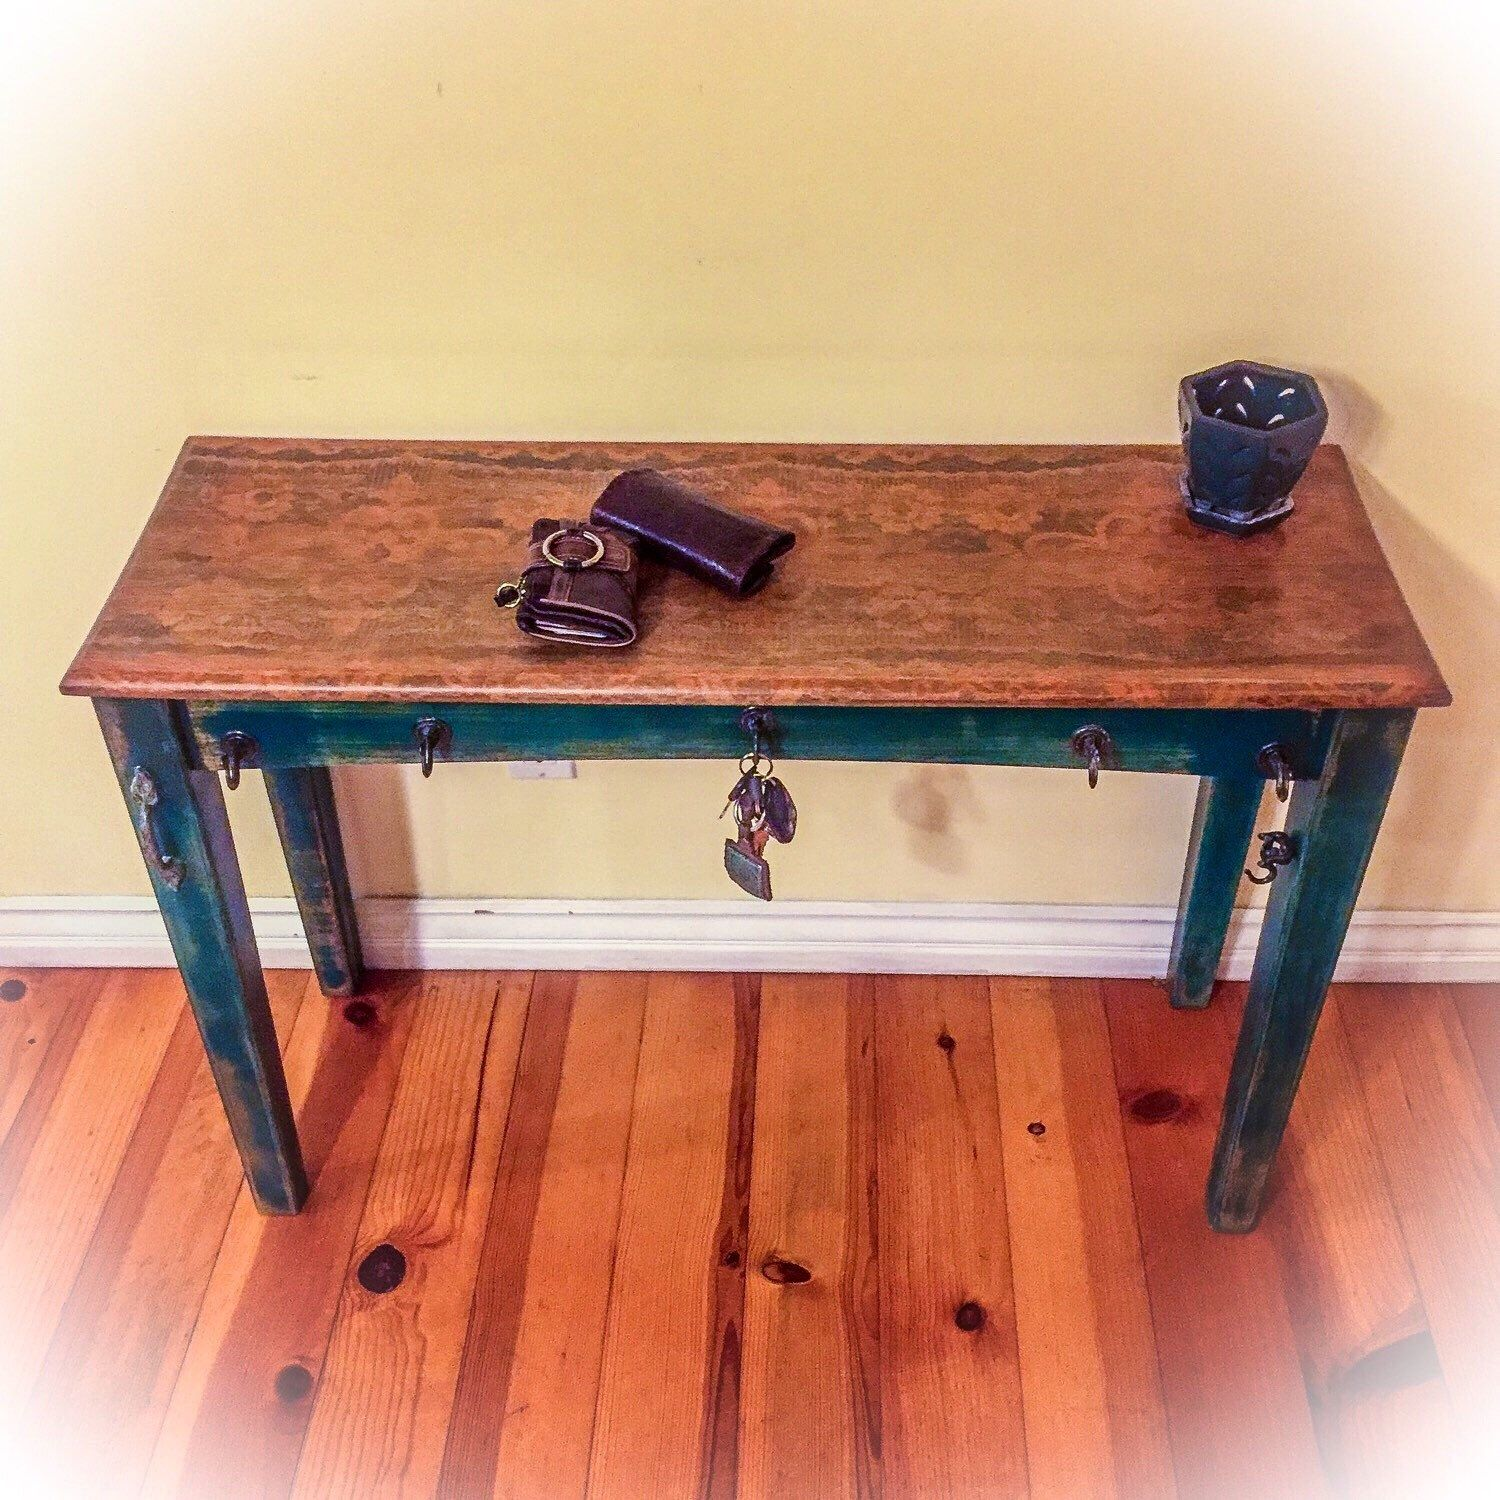 Antique Entryway Table sold - antique, farmhouse table, patina, hook accents, kitchen